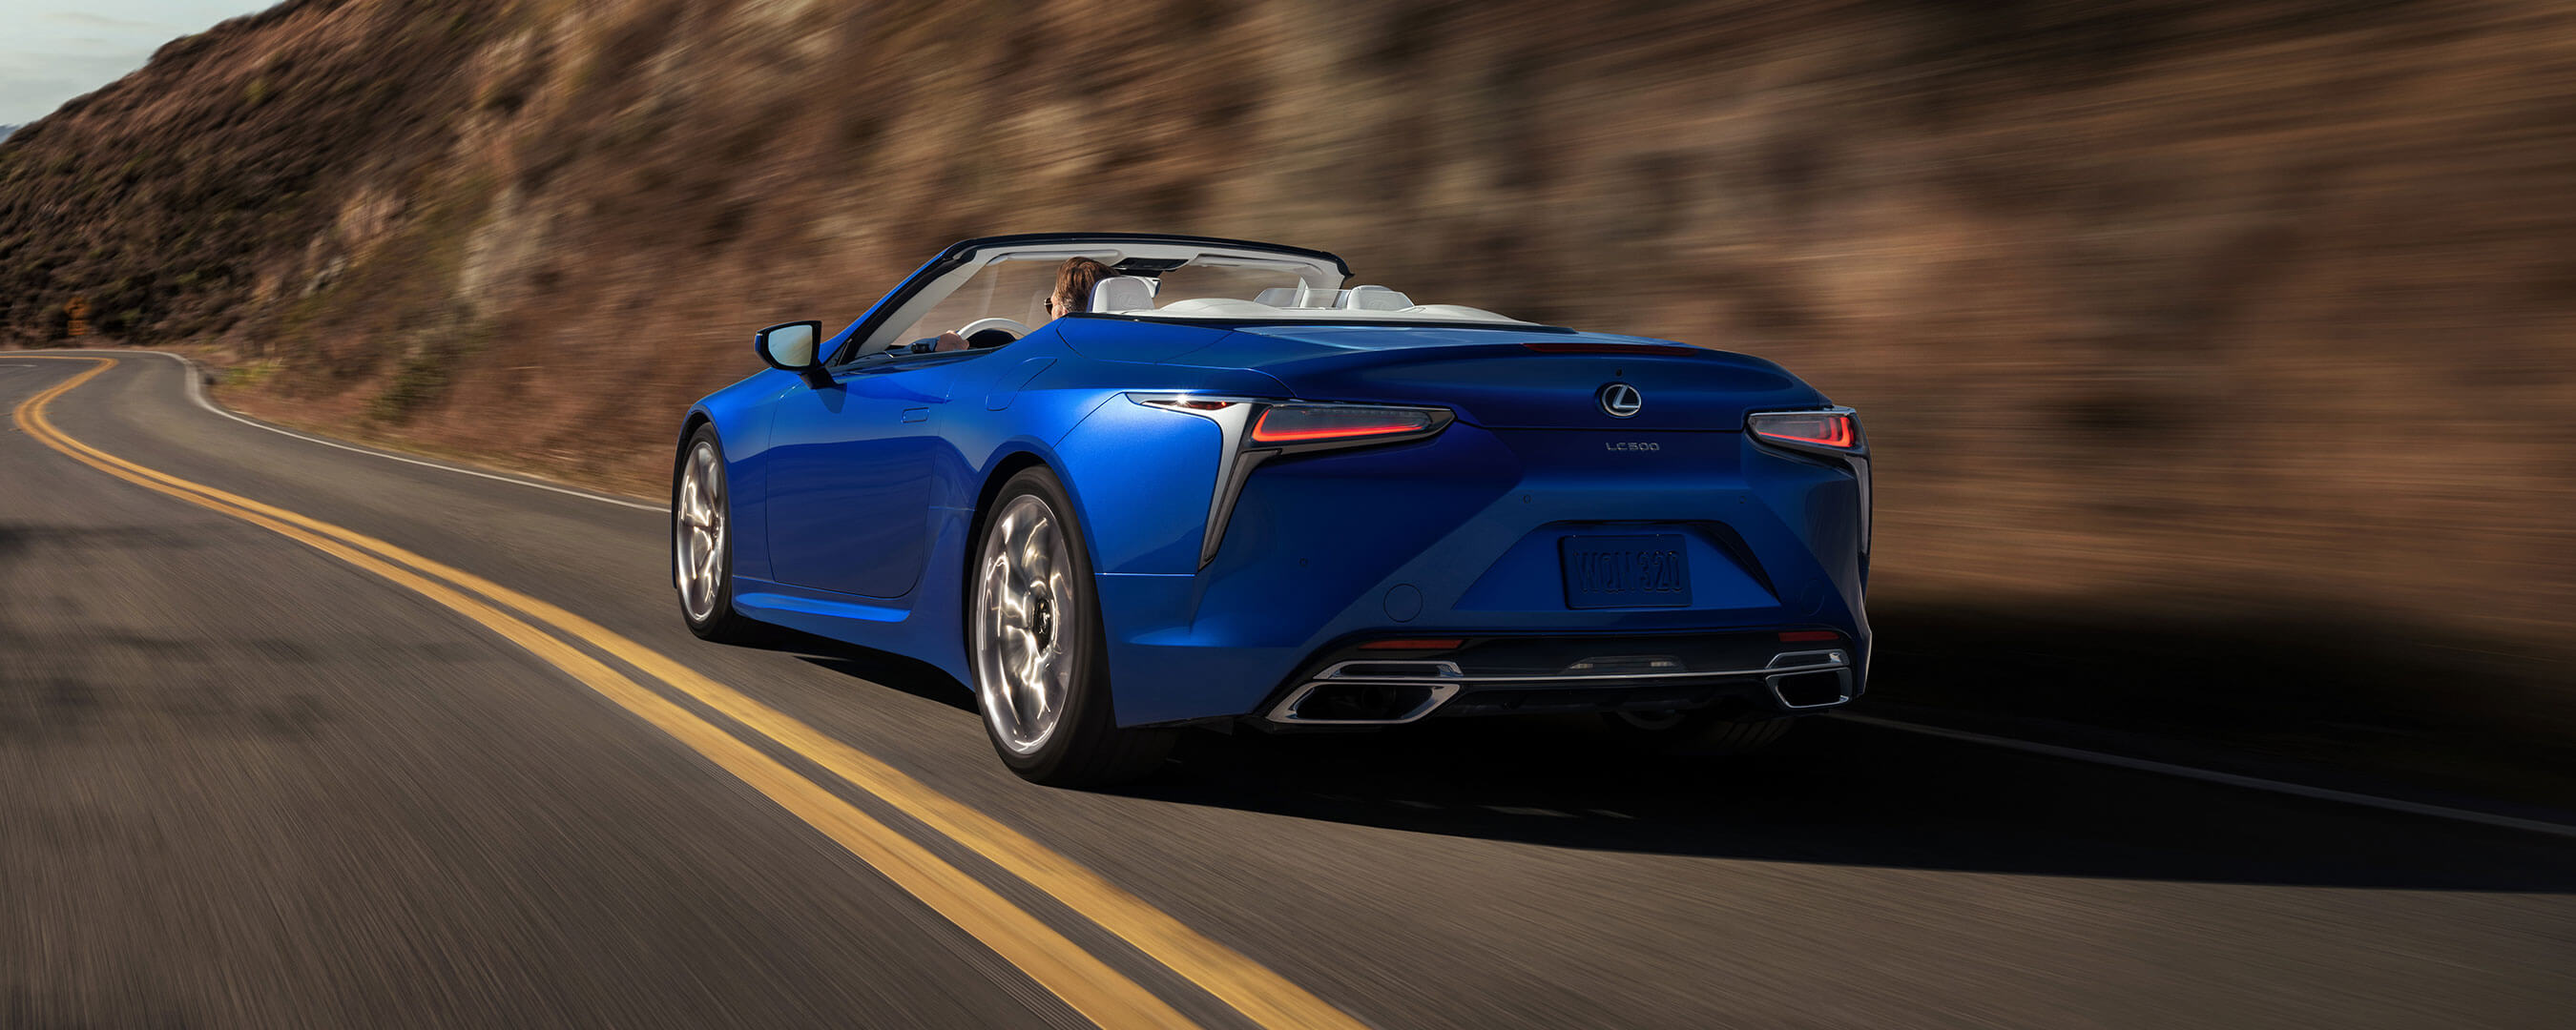 2020 lexus lc convertible experience exterior back